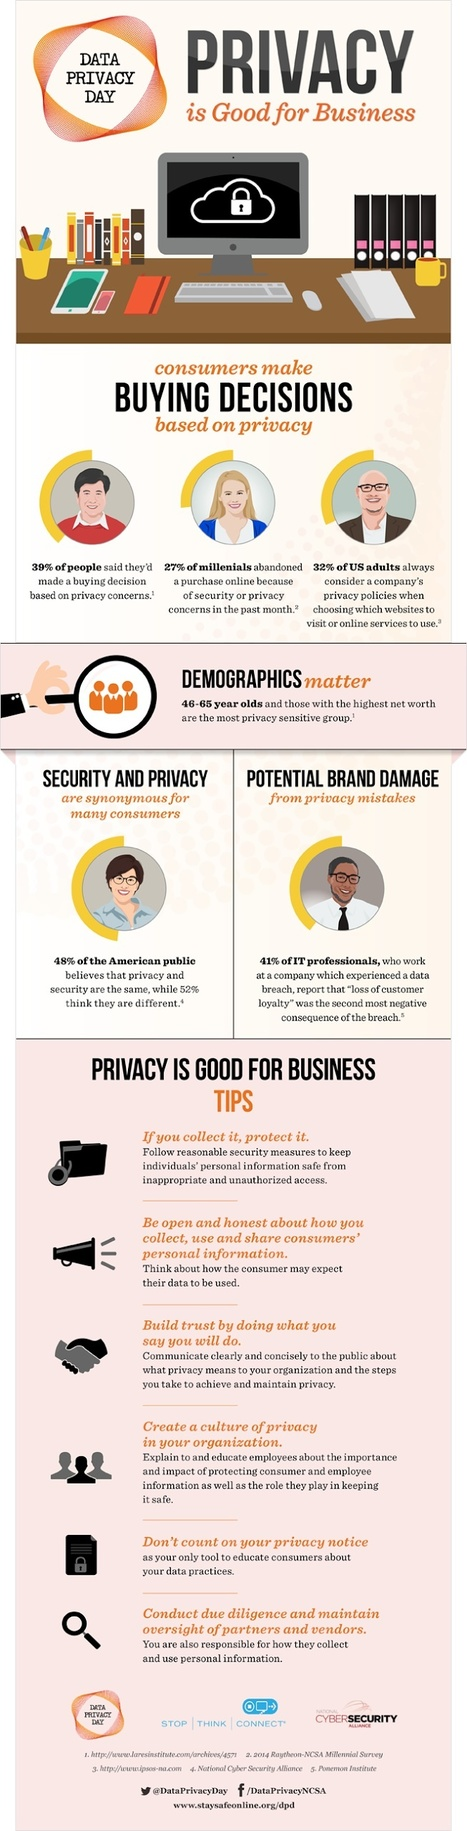 PRIVACY IS GOOD FOR BUSINESS [INFOGRAPHIC] | eSkills | eLeaderShip | FootprintDigital | Scoop.it